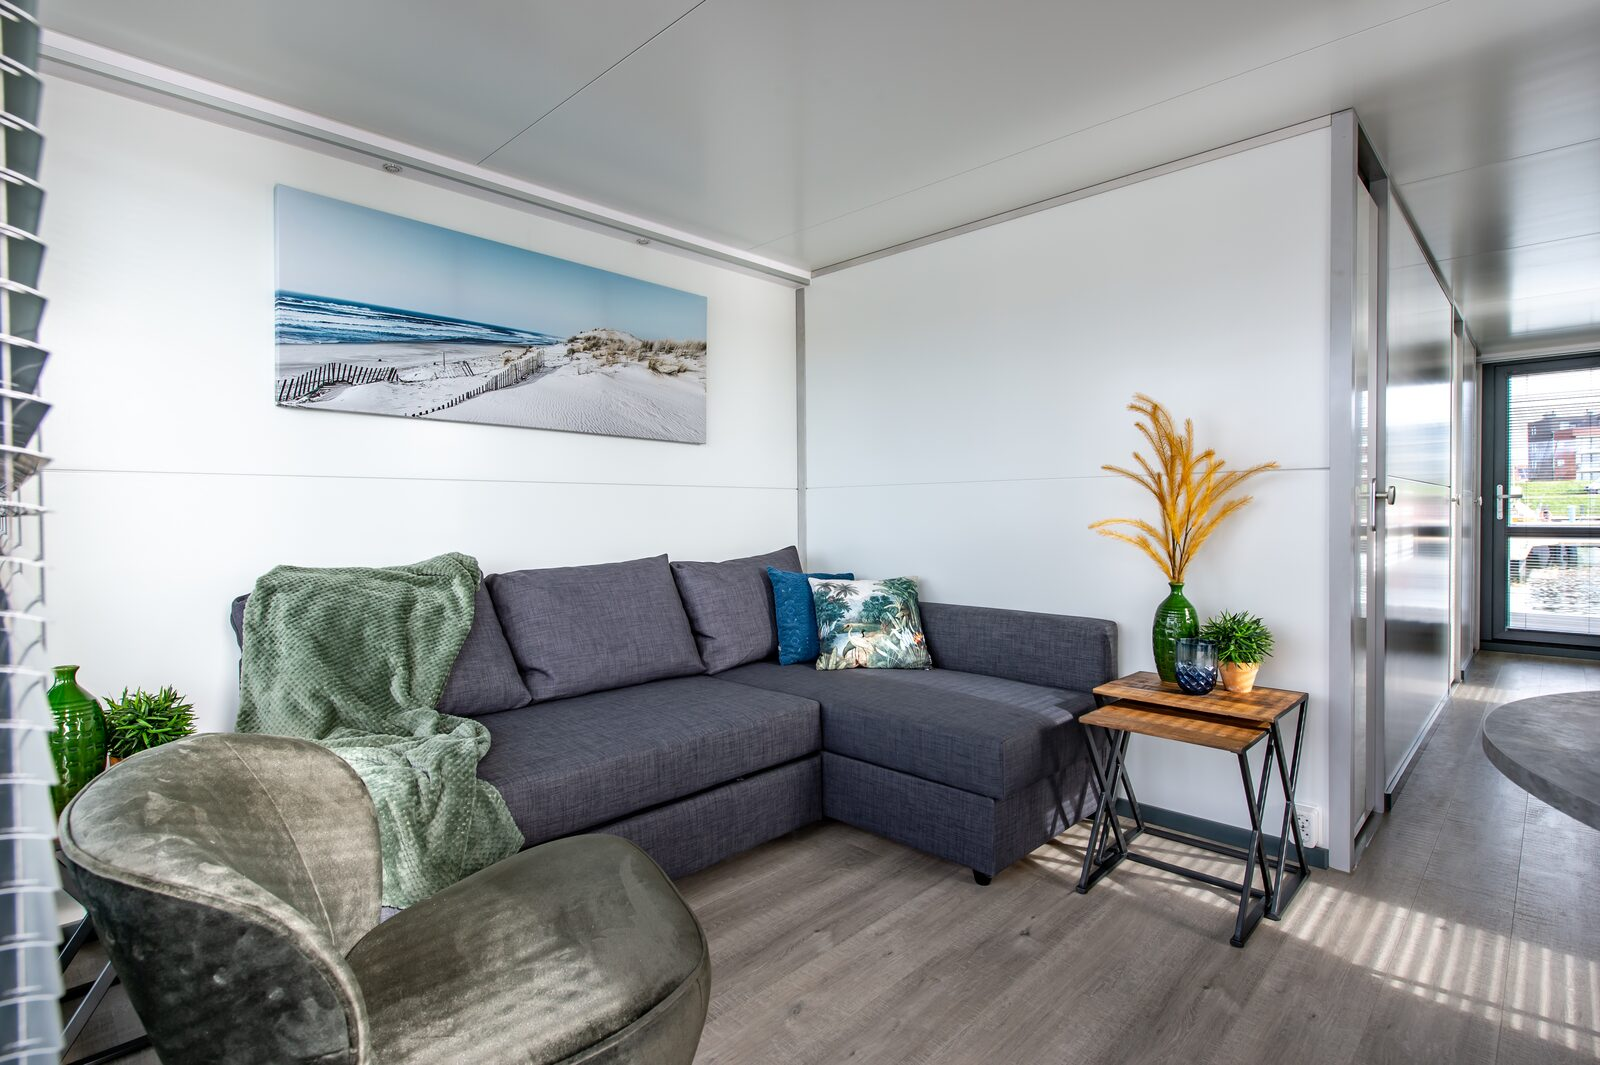 Interieur havenlodges kamperland